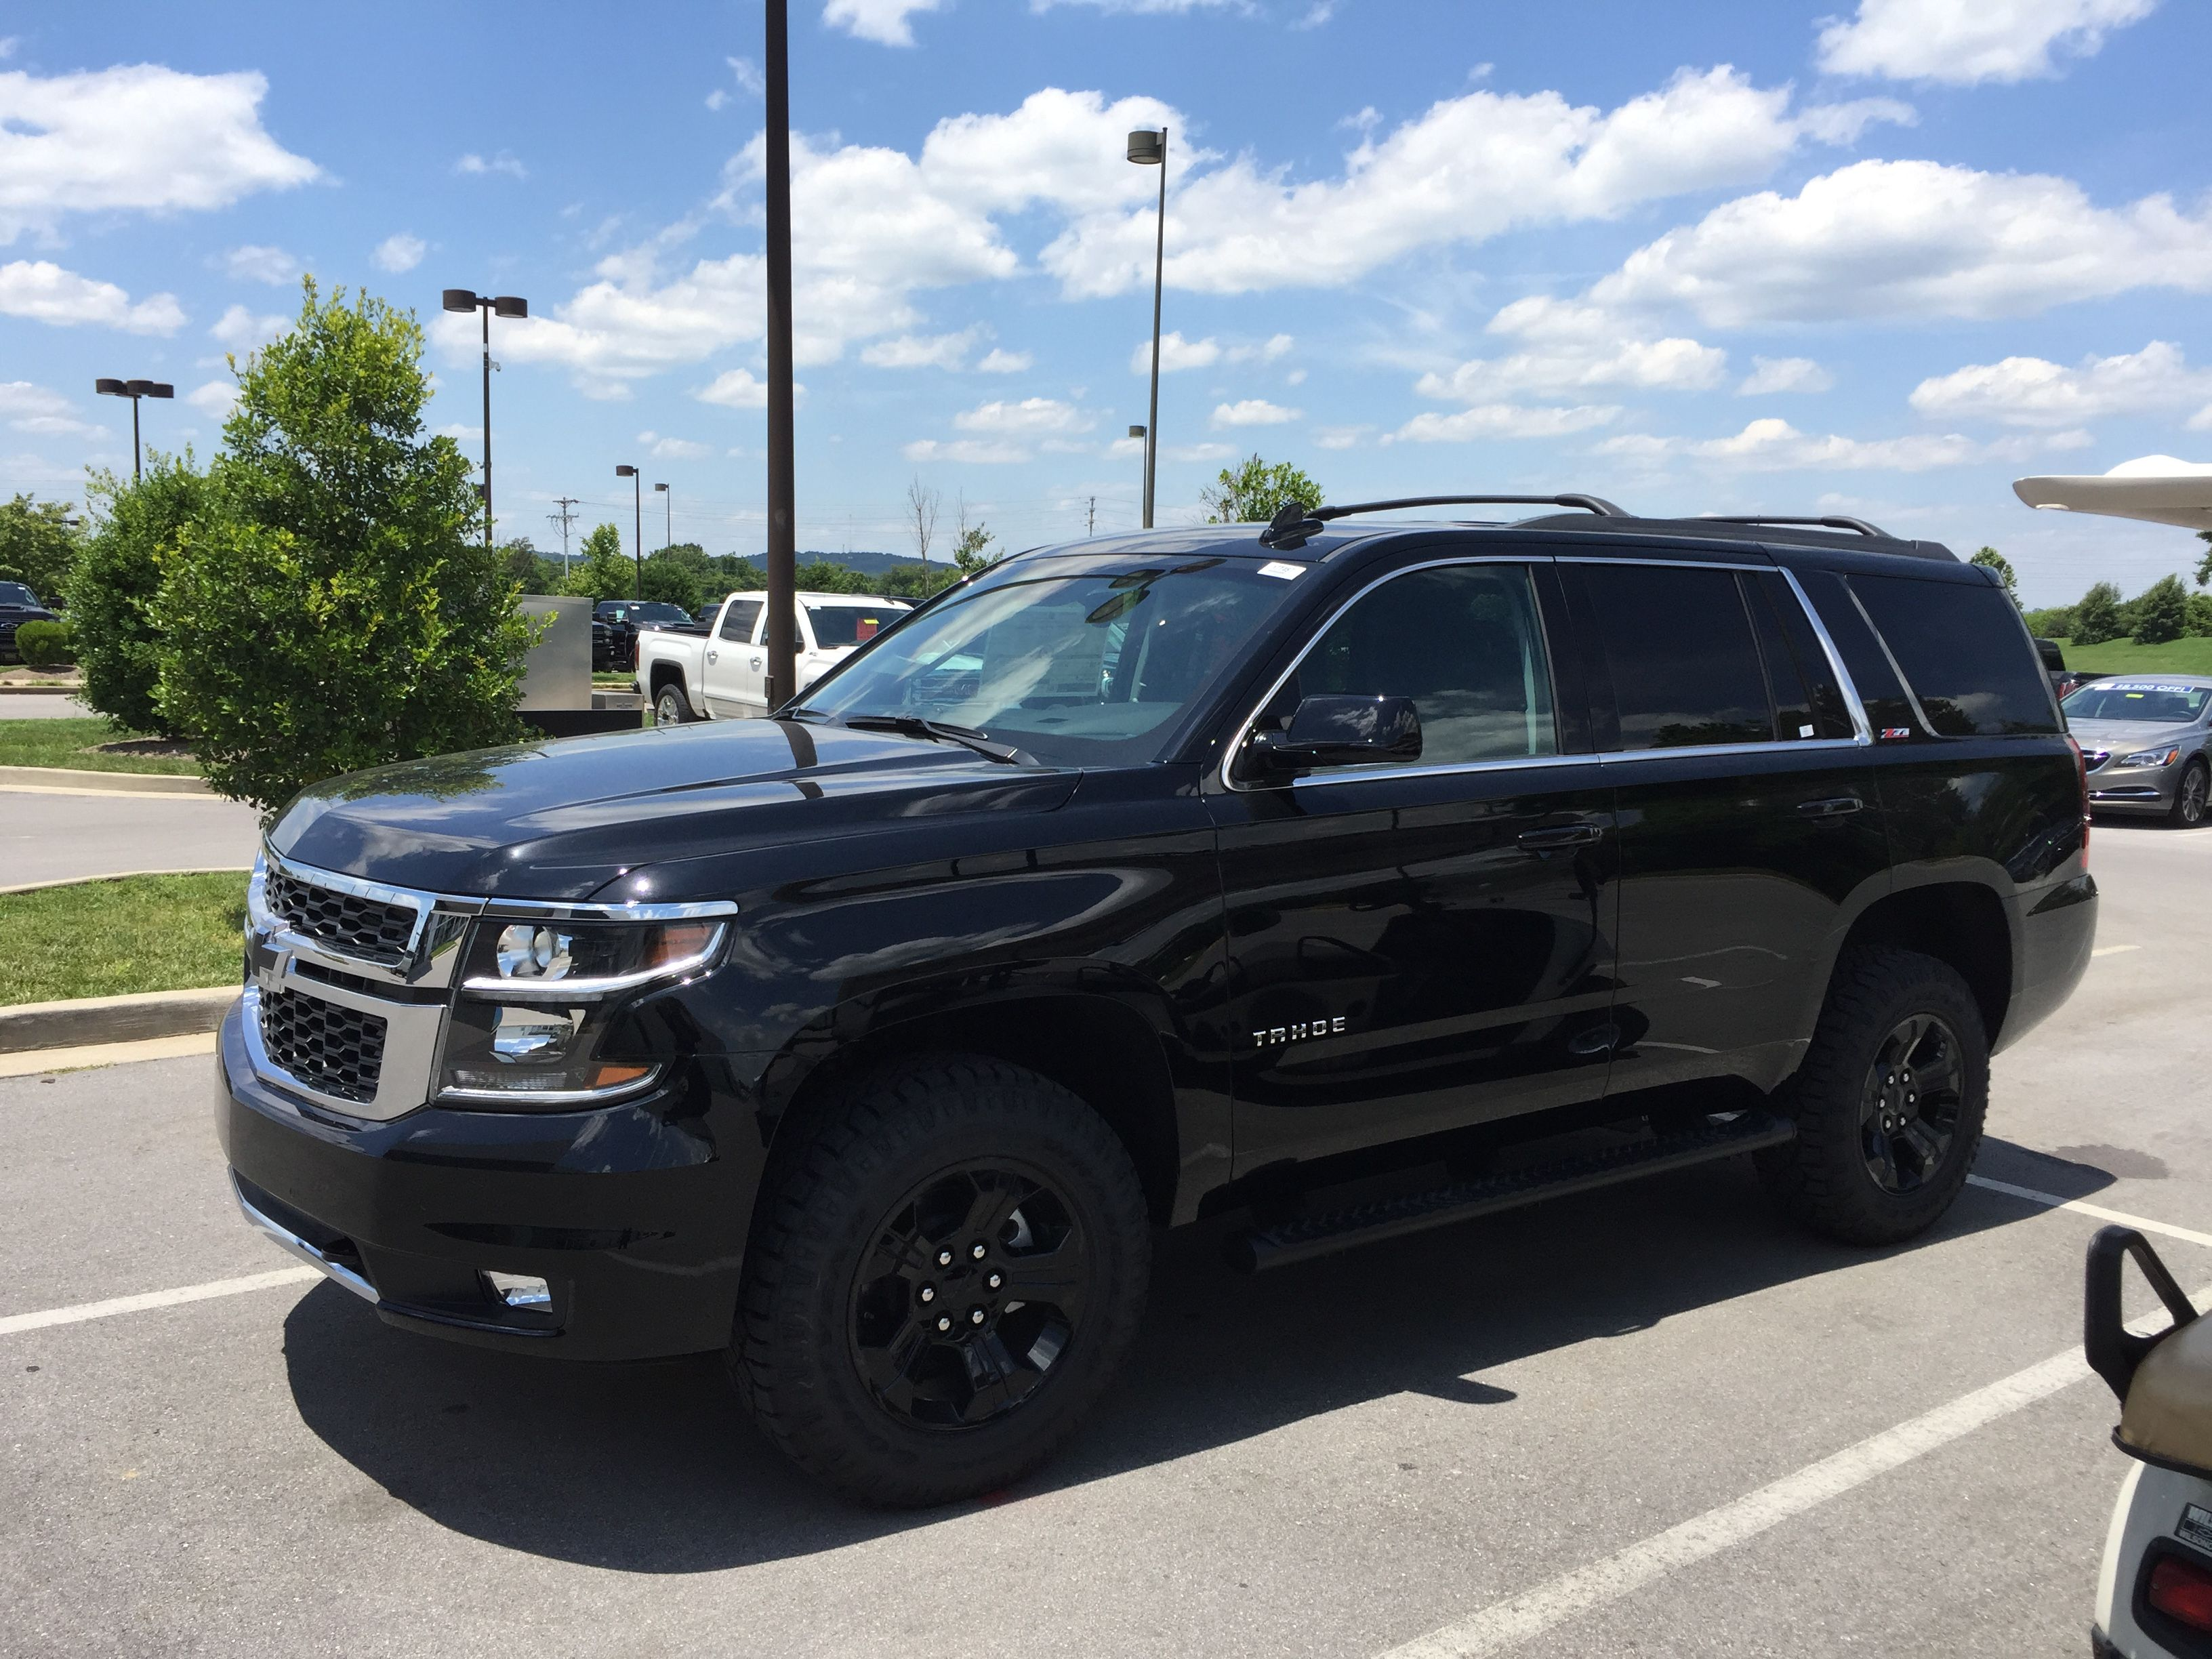 Chevy Tahoe 2017 Z71 Midnight Edition Chevy Tahoe Chevrolet Tahoe Chevy Tahoe Z71